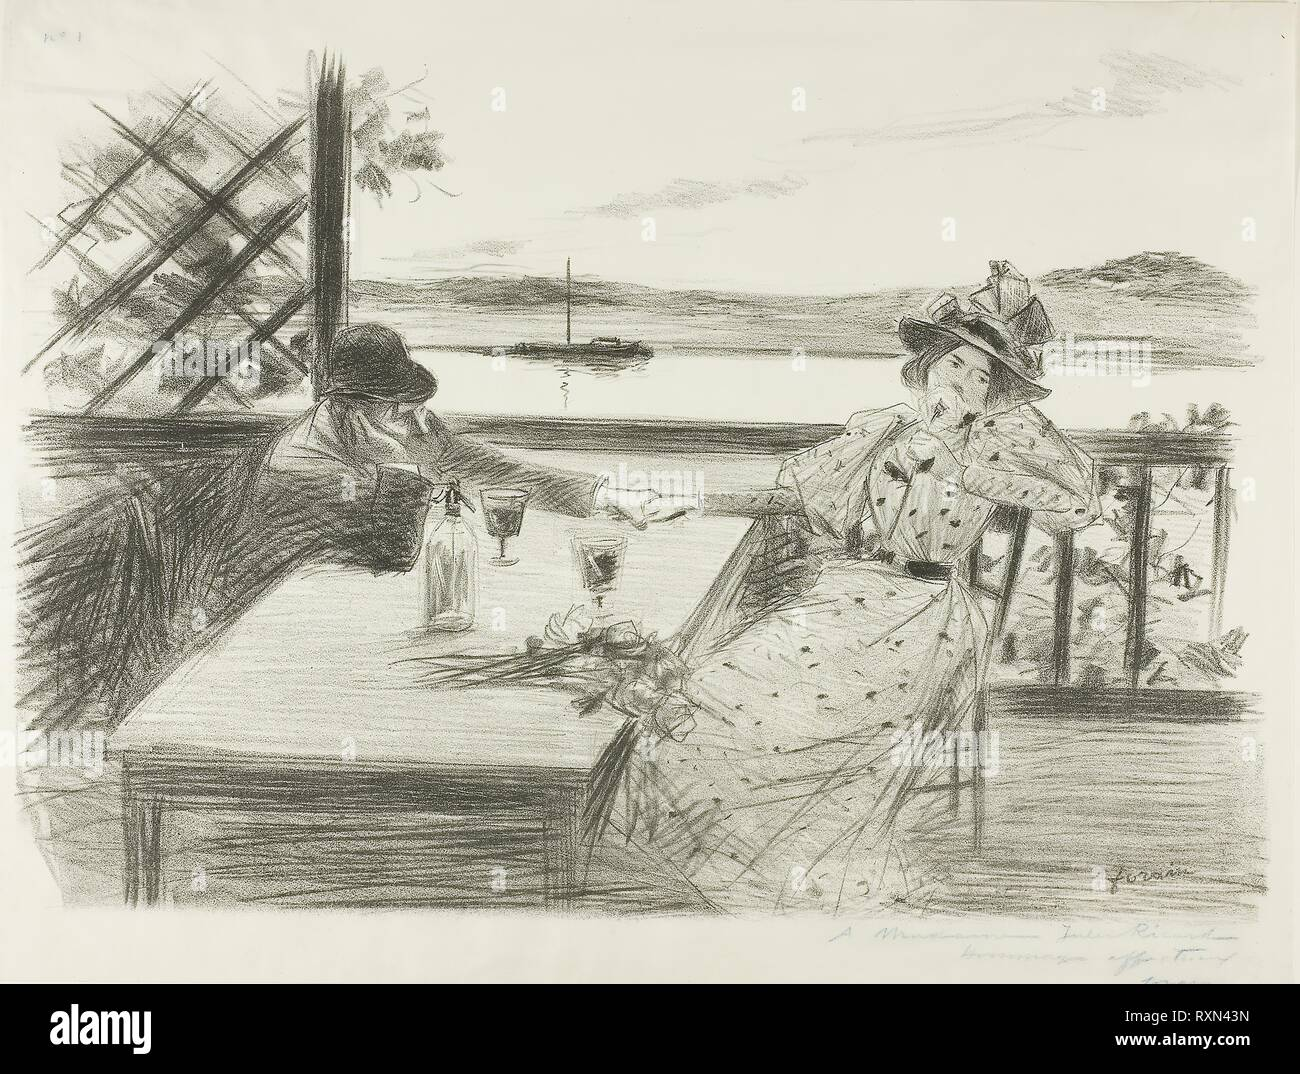 The Arbor. Jean Louis Forain; French, 1852-1931. Date: 1893. Dimensions: 288 × 413 mm. Lithograph on ivory wove paper. Origin: France. Museum: The Chicago Art Institute. - Stock Image